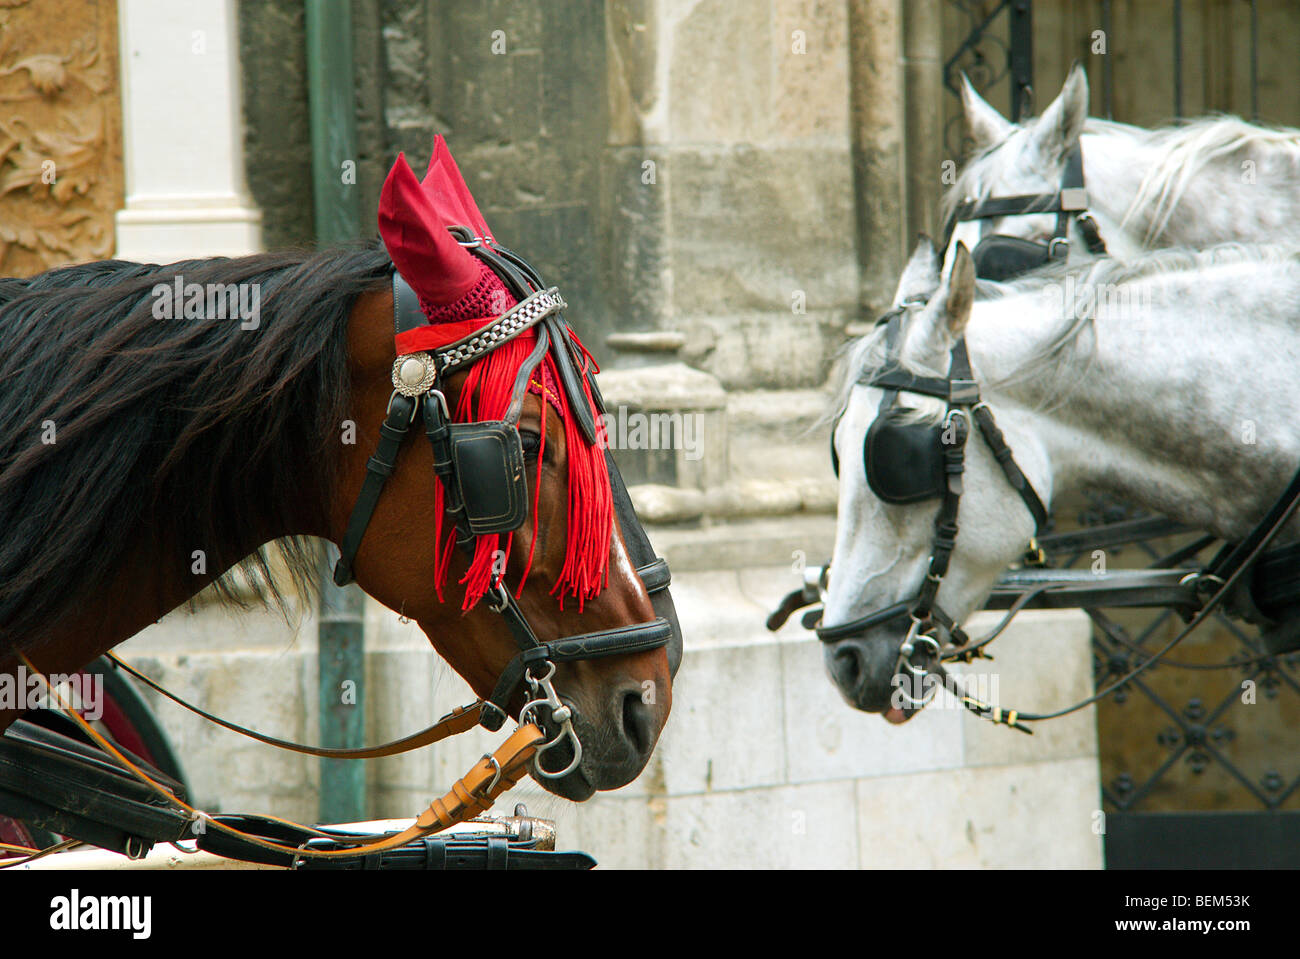 Heads of brown and gray horses with harness - Stock Image